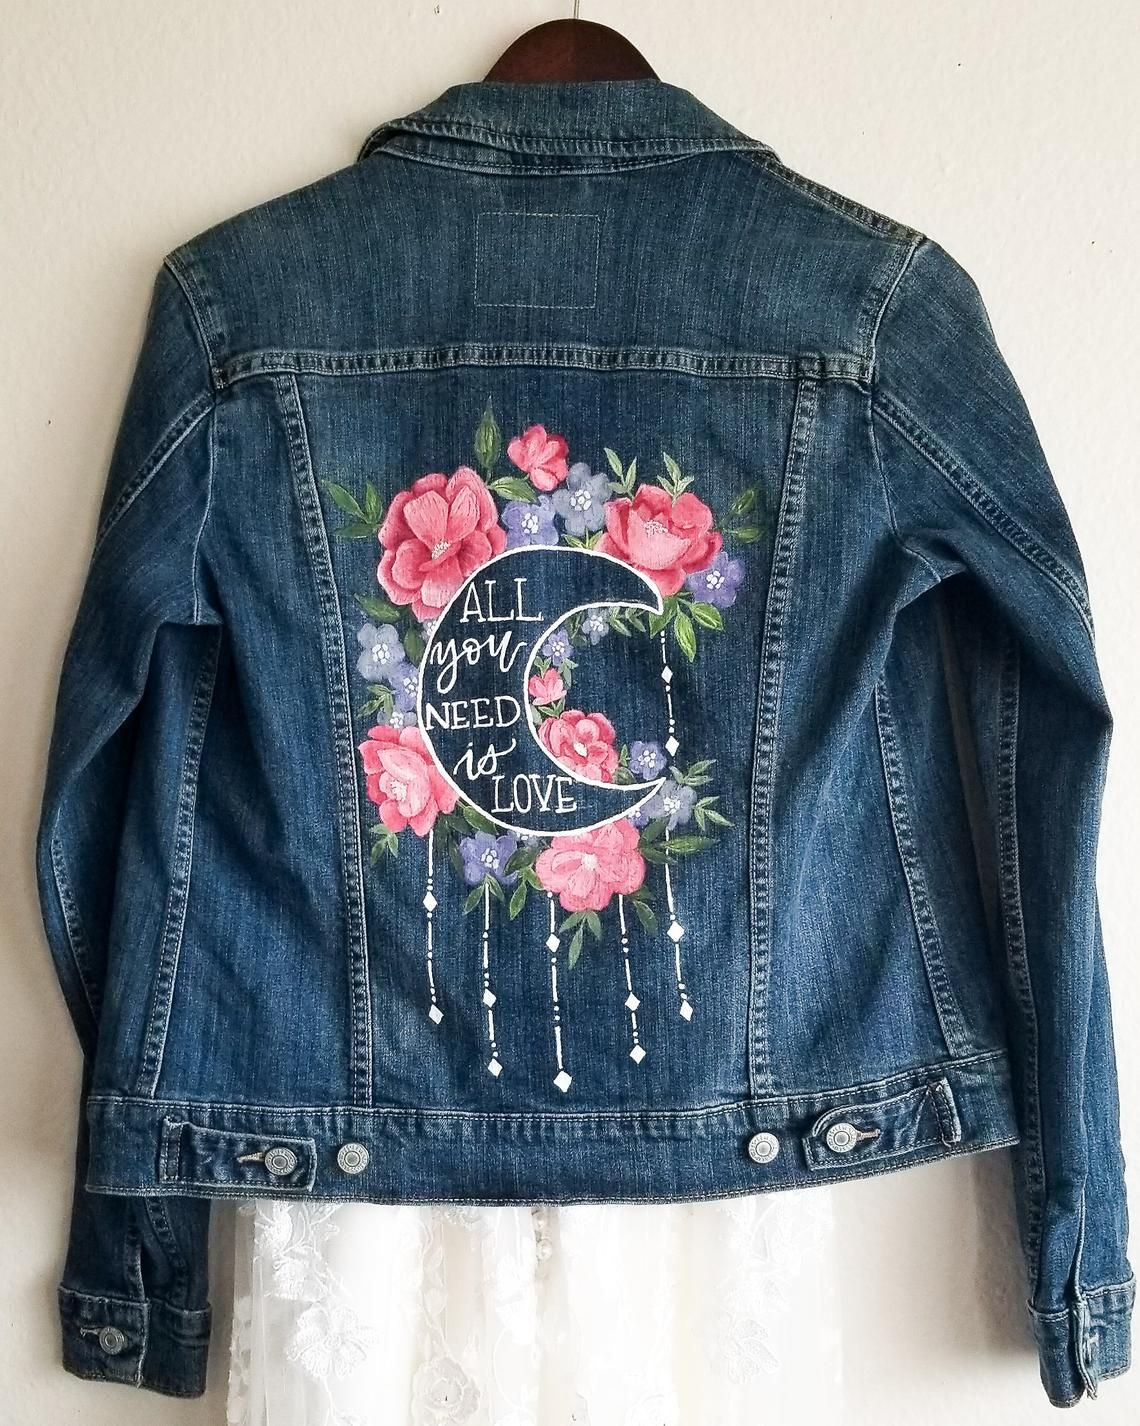 All You Need is Love Painted Jacket  Mrs. Jacket  Denim | Etsy